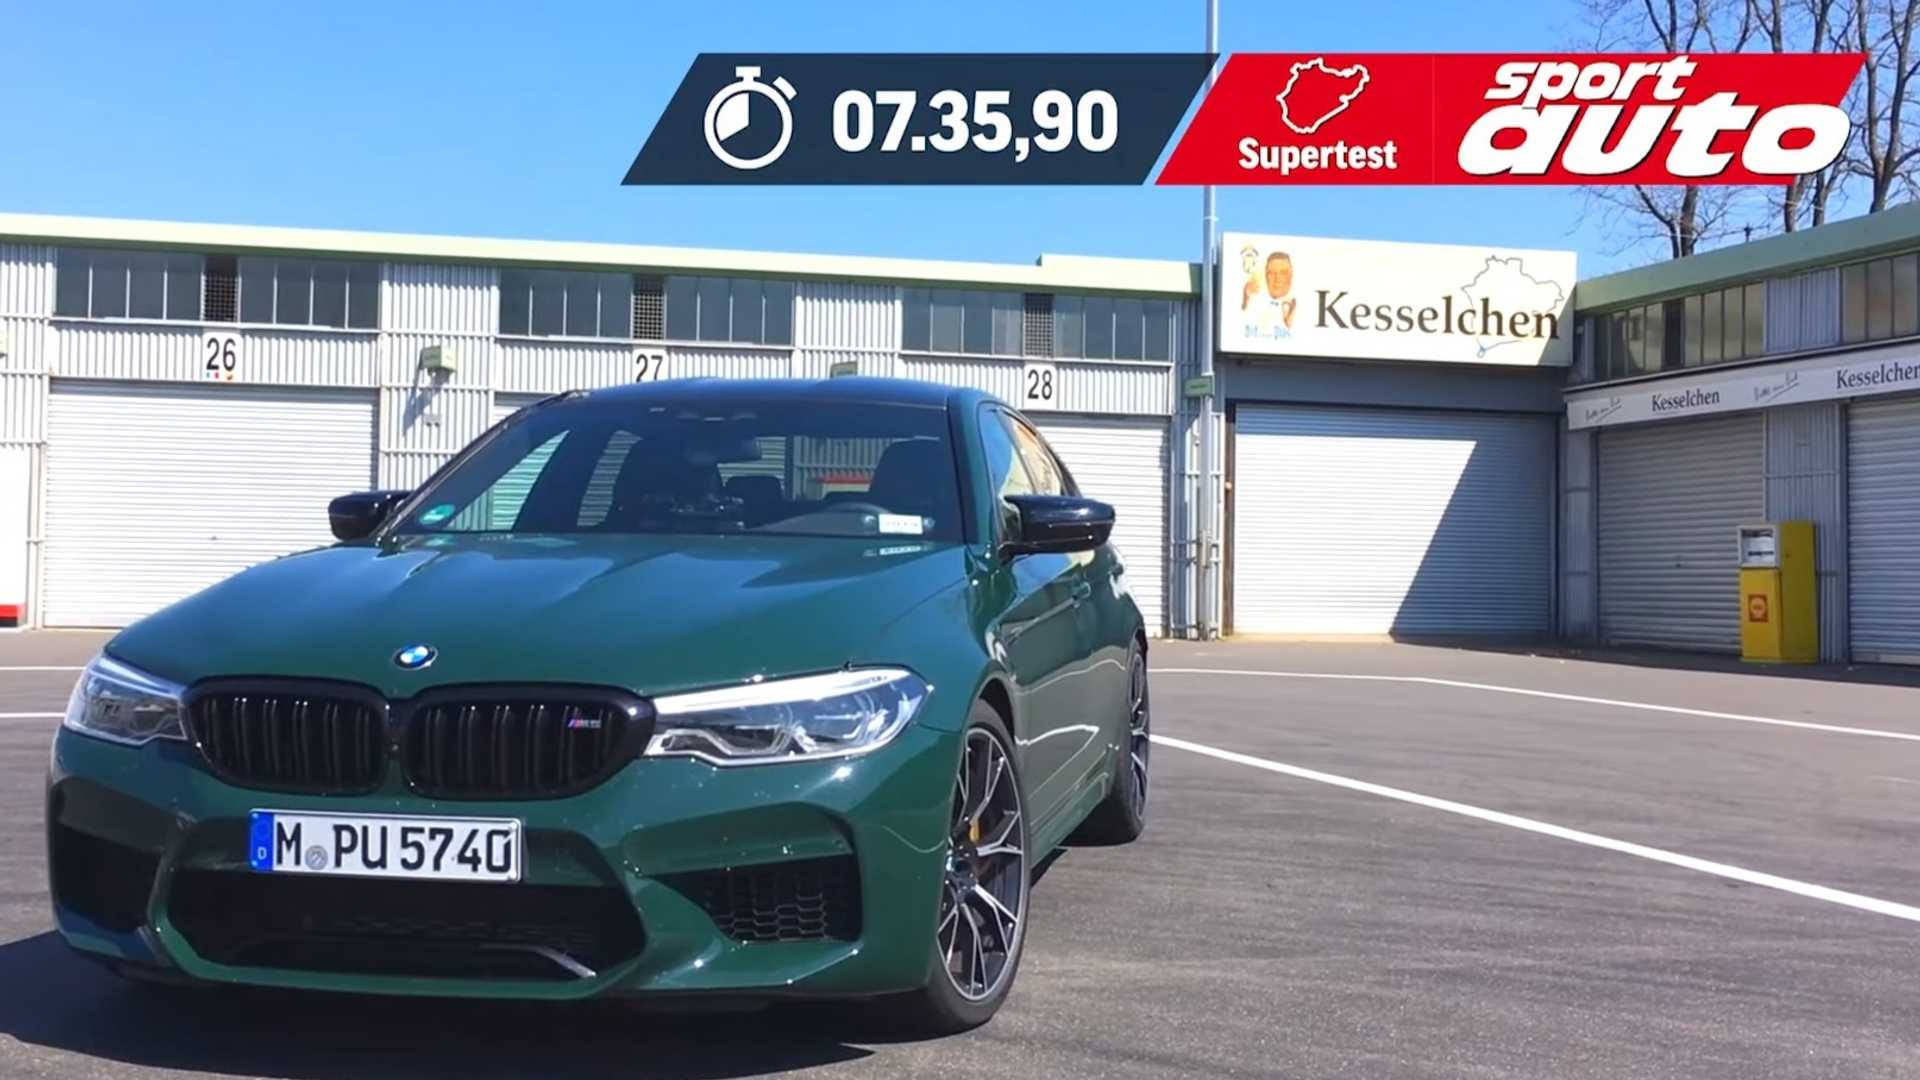 See BMW M5 Competition Lap The Nurburgring In A Remarkable 7:35